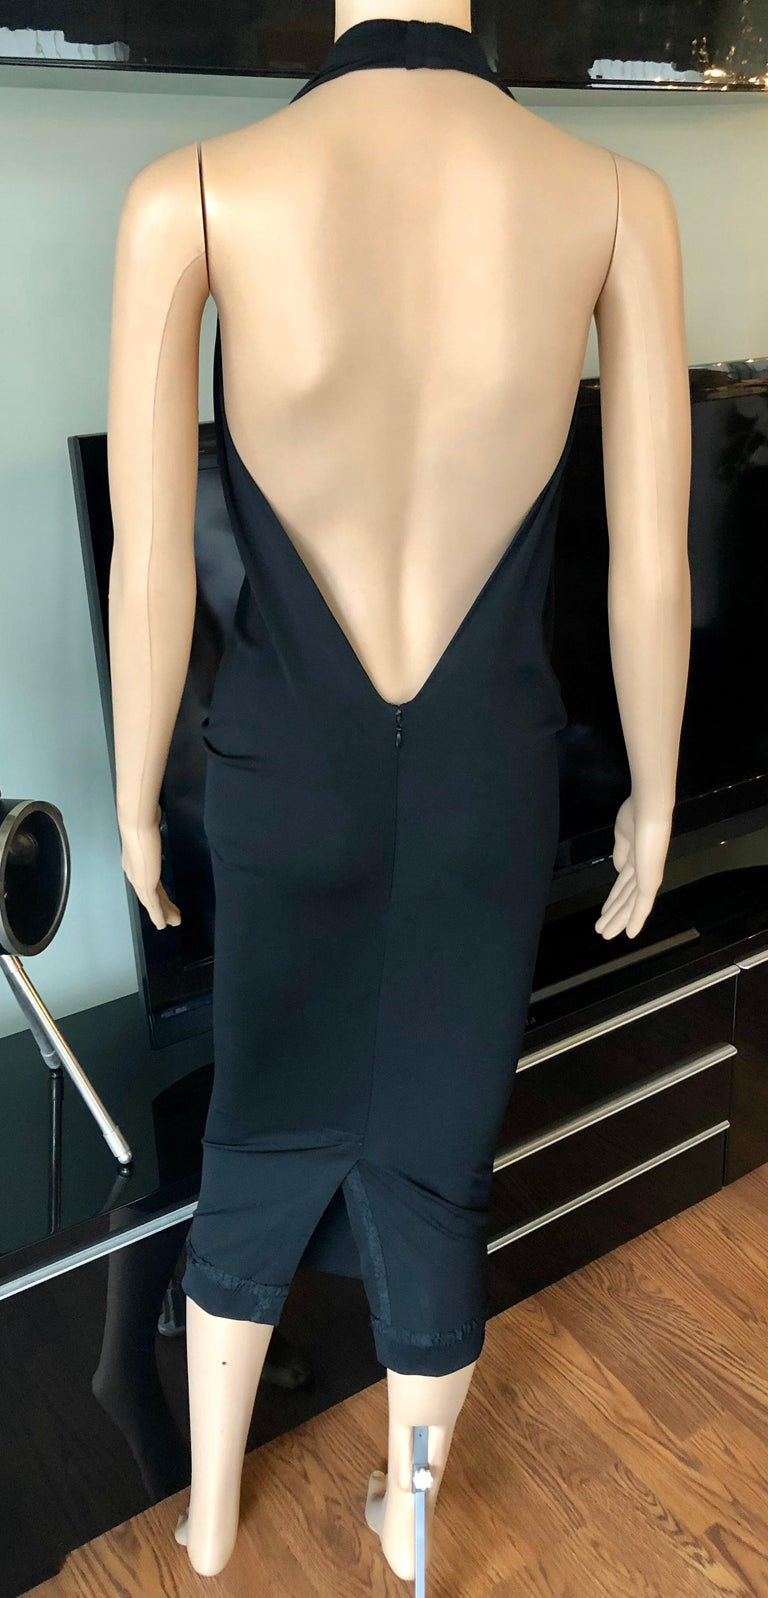 Jean Paul Gaultier Plunging Neckline Draped Halter Open Back Black Dress For Sale 2